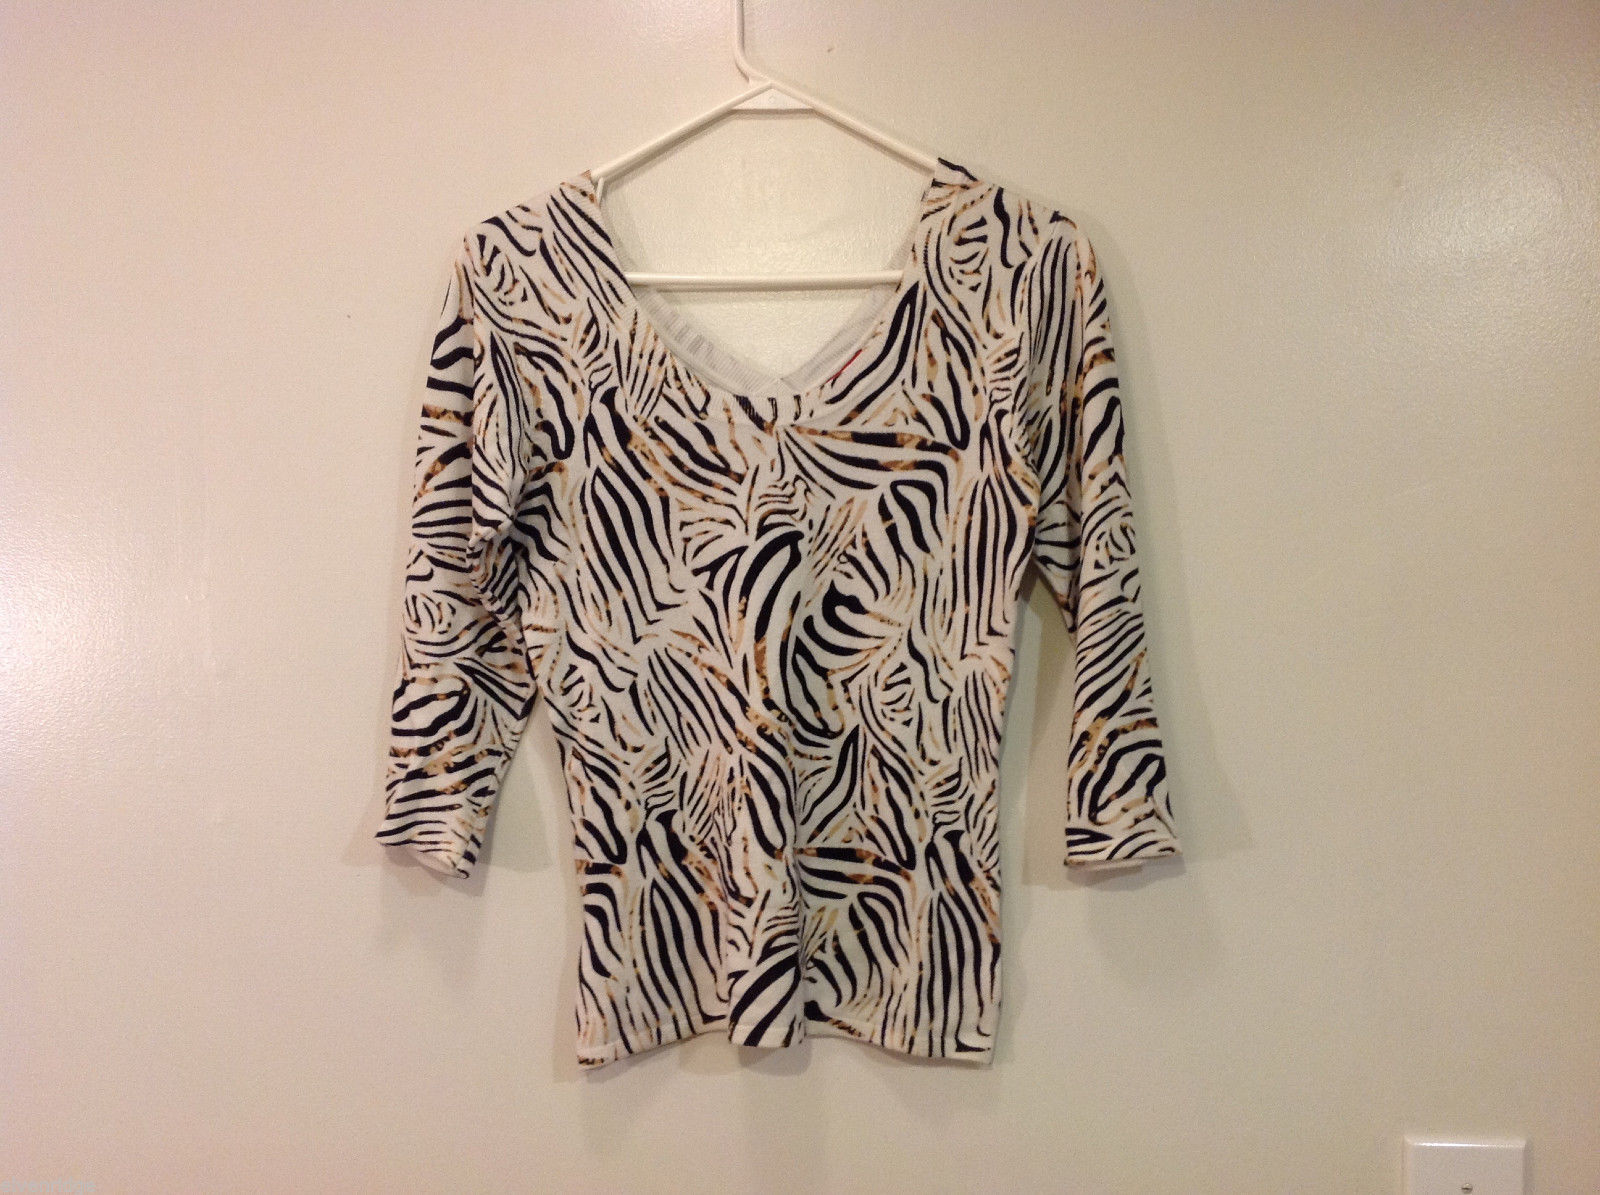 RED Zebra Animal Print Pullover Top White/Black/Brown, 3/4 sleeve, Size S